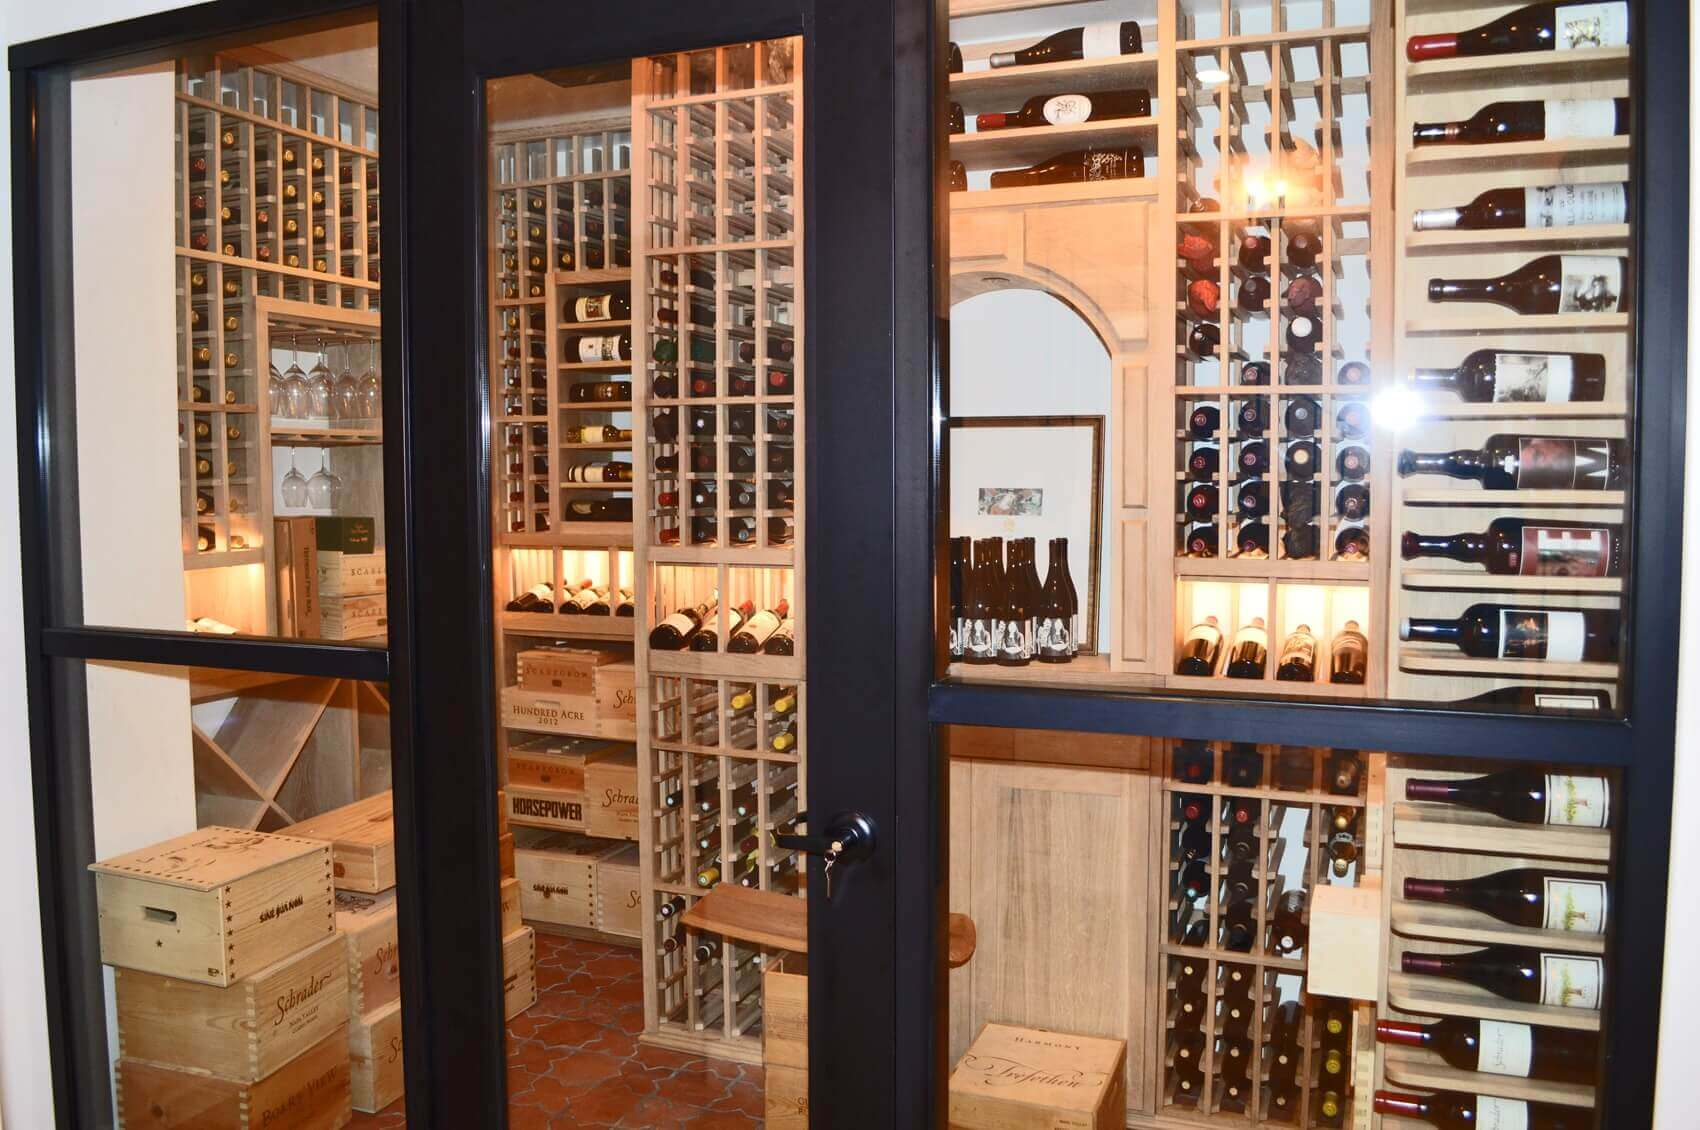 The framed glass doors at the wine cellar entrance gives a welcoming thought to the visitors of the wine room.